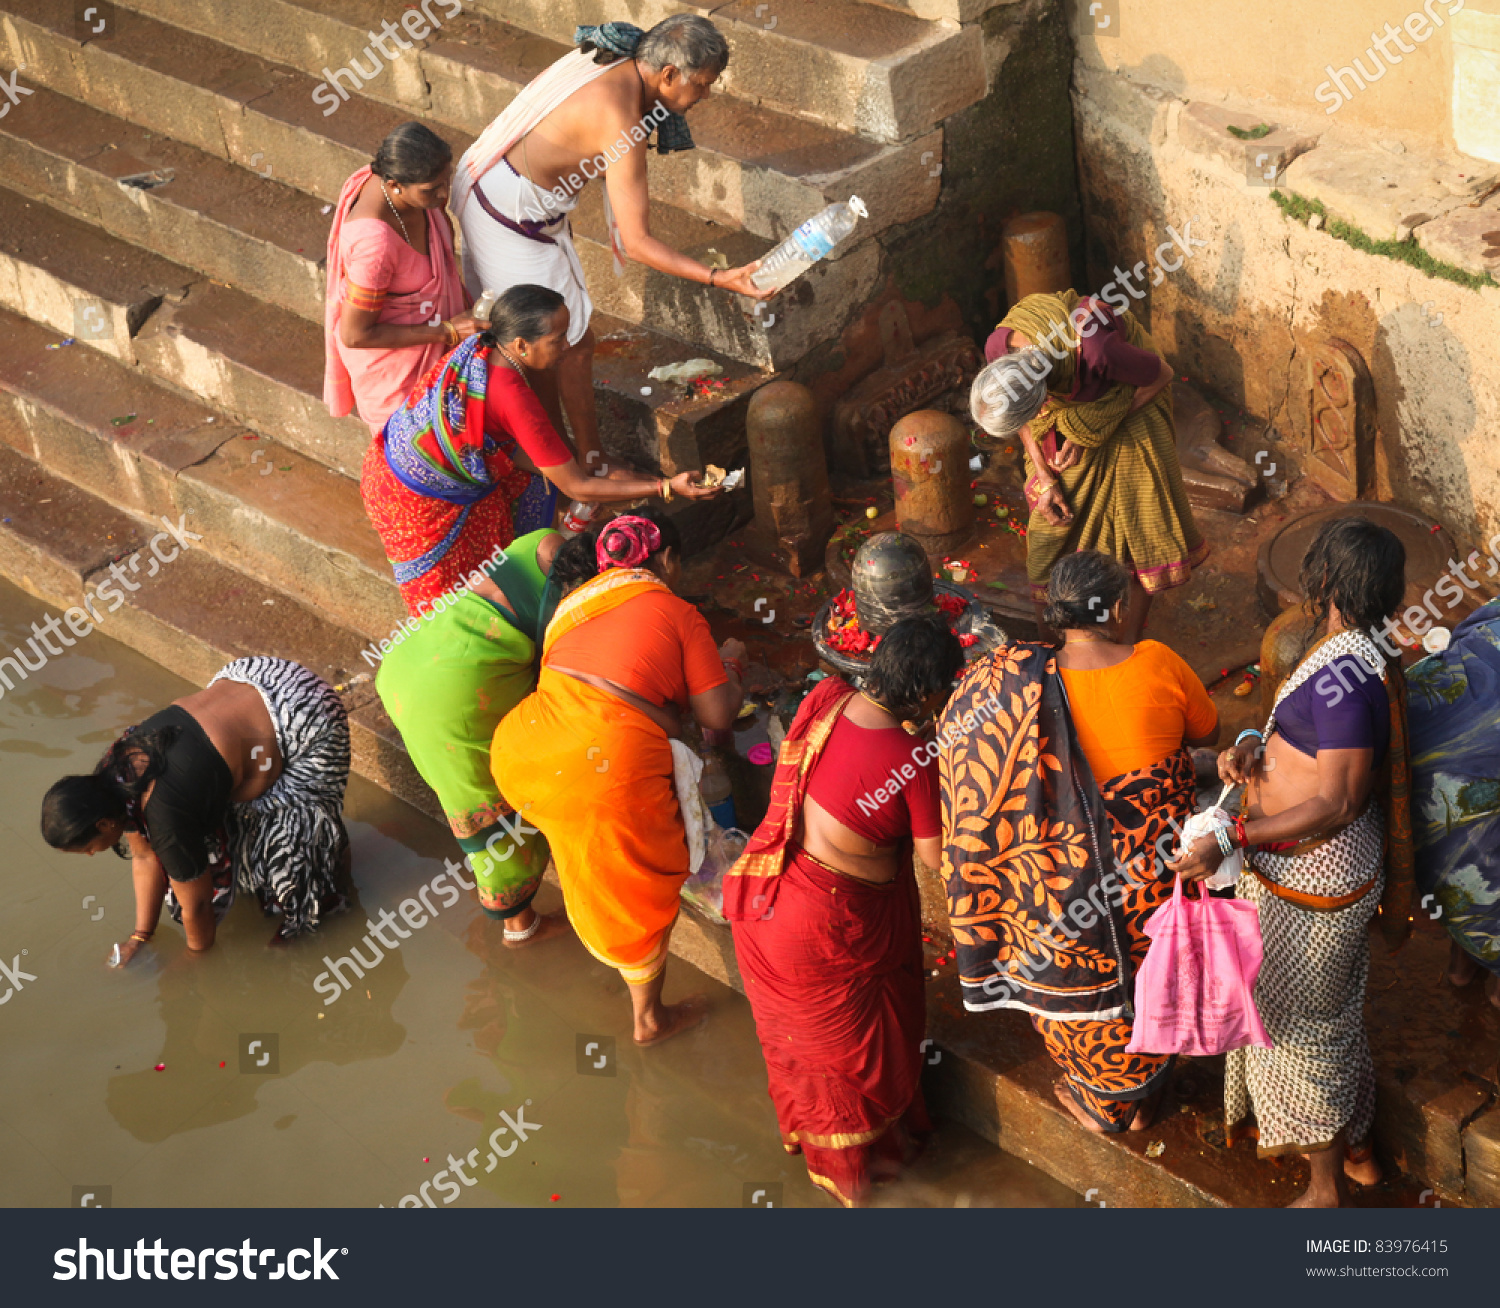 hindu single men in holy city Which is the largest religious gathering on earth  in hindu festival of kumbh in hindu holy city hindu holy city of haridwar  of holy men/women and .